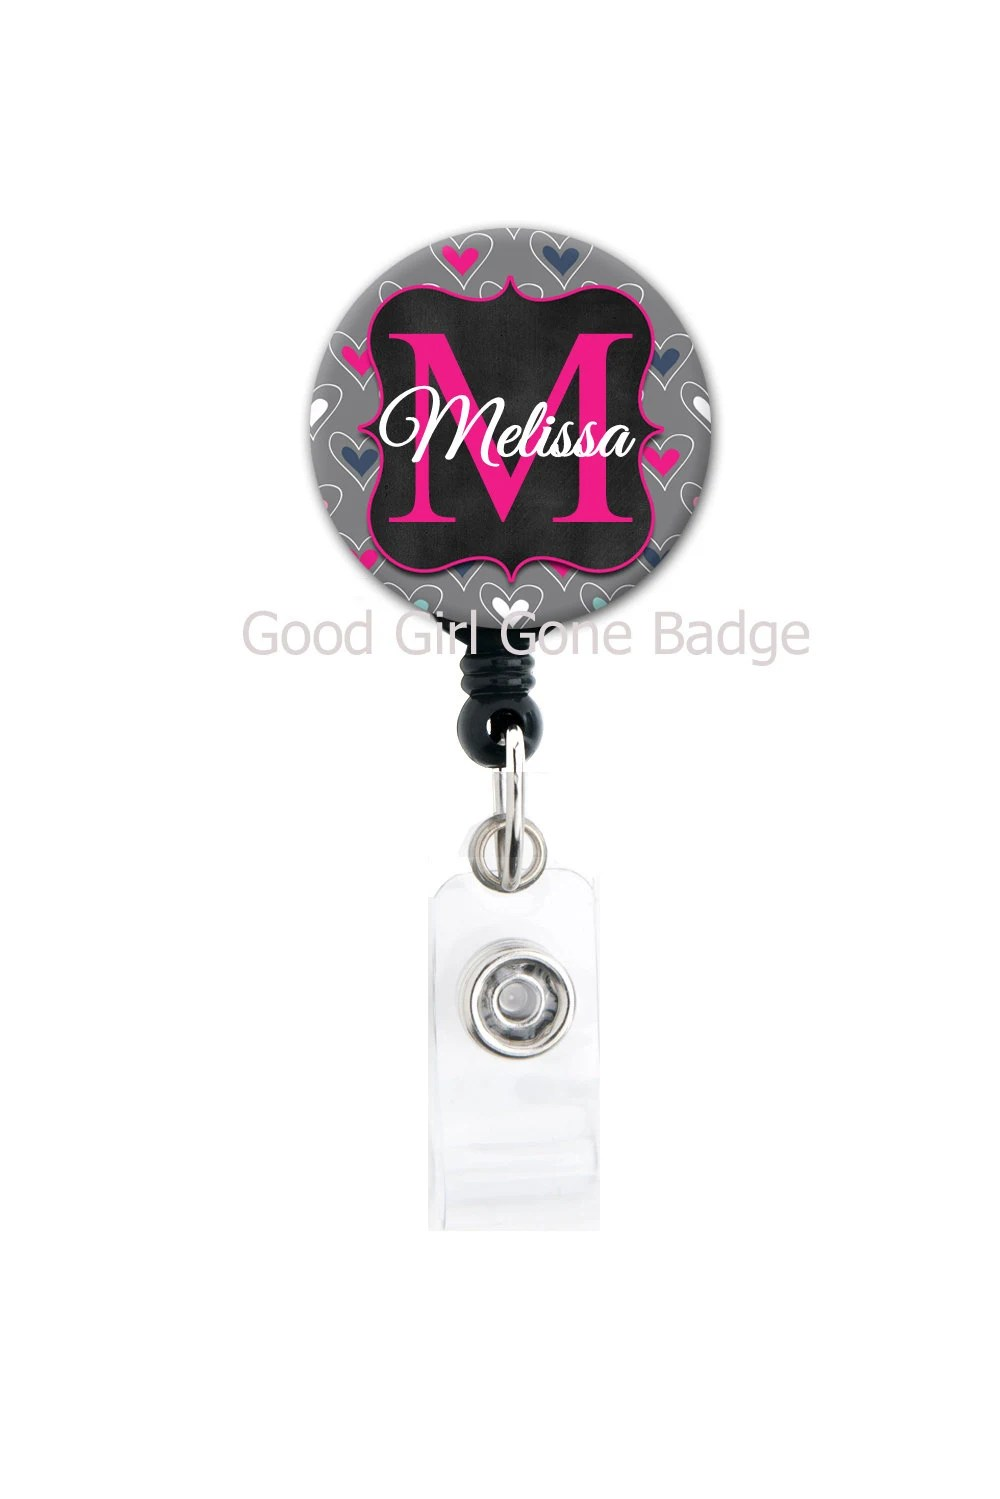 Retractable Id Badge Holder Personalized Name Grey Black